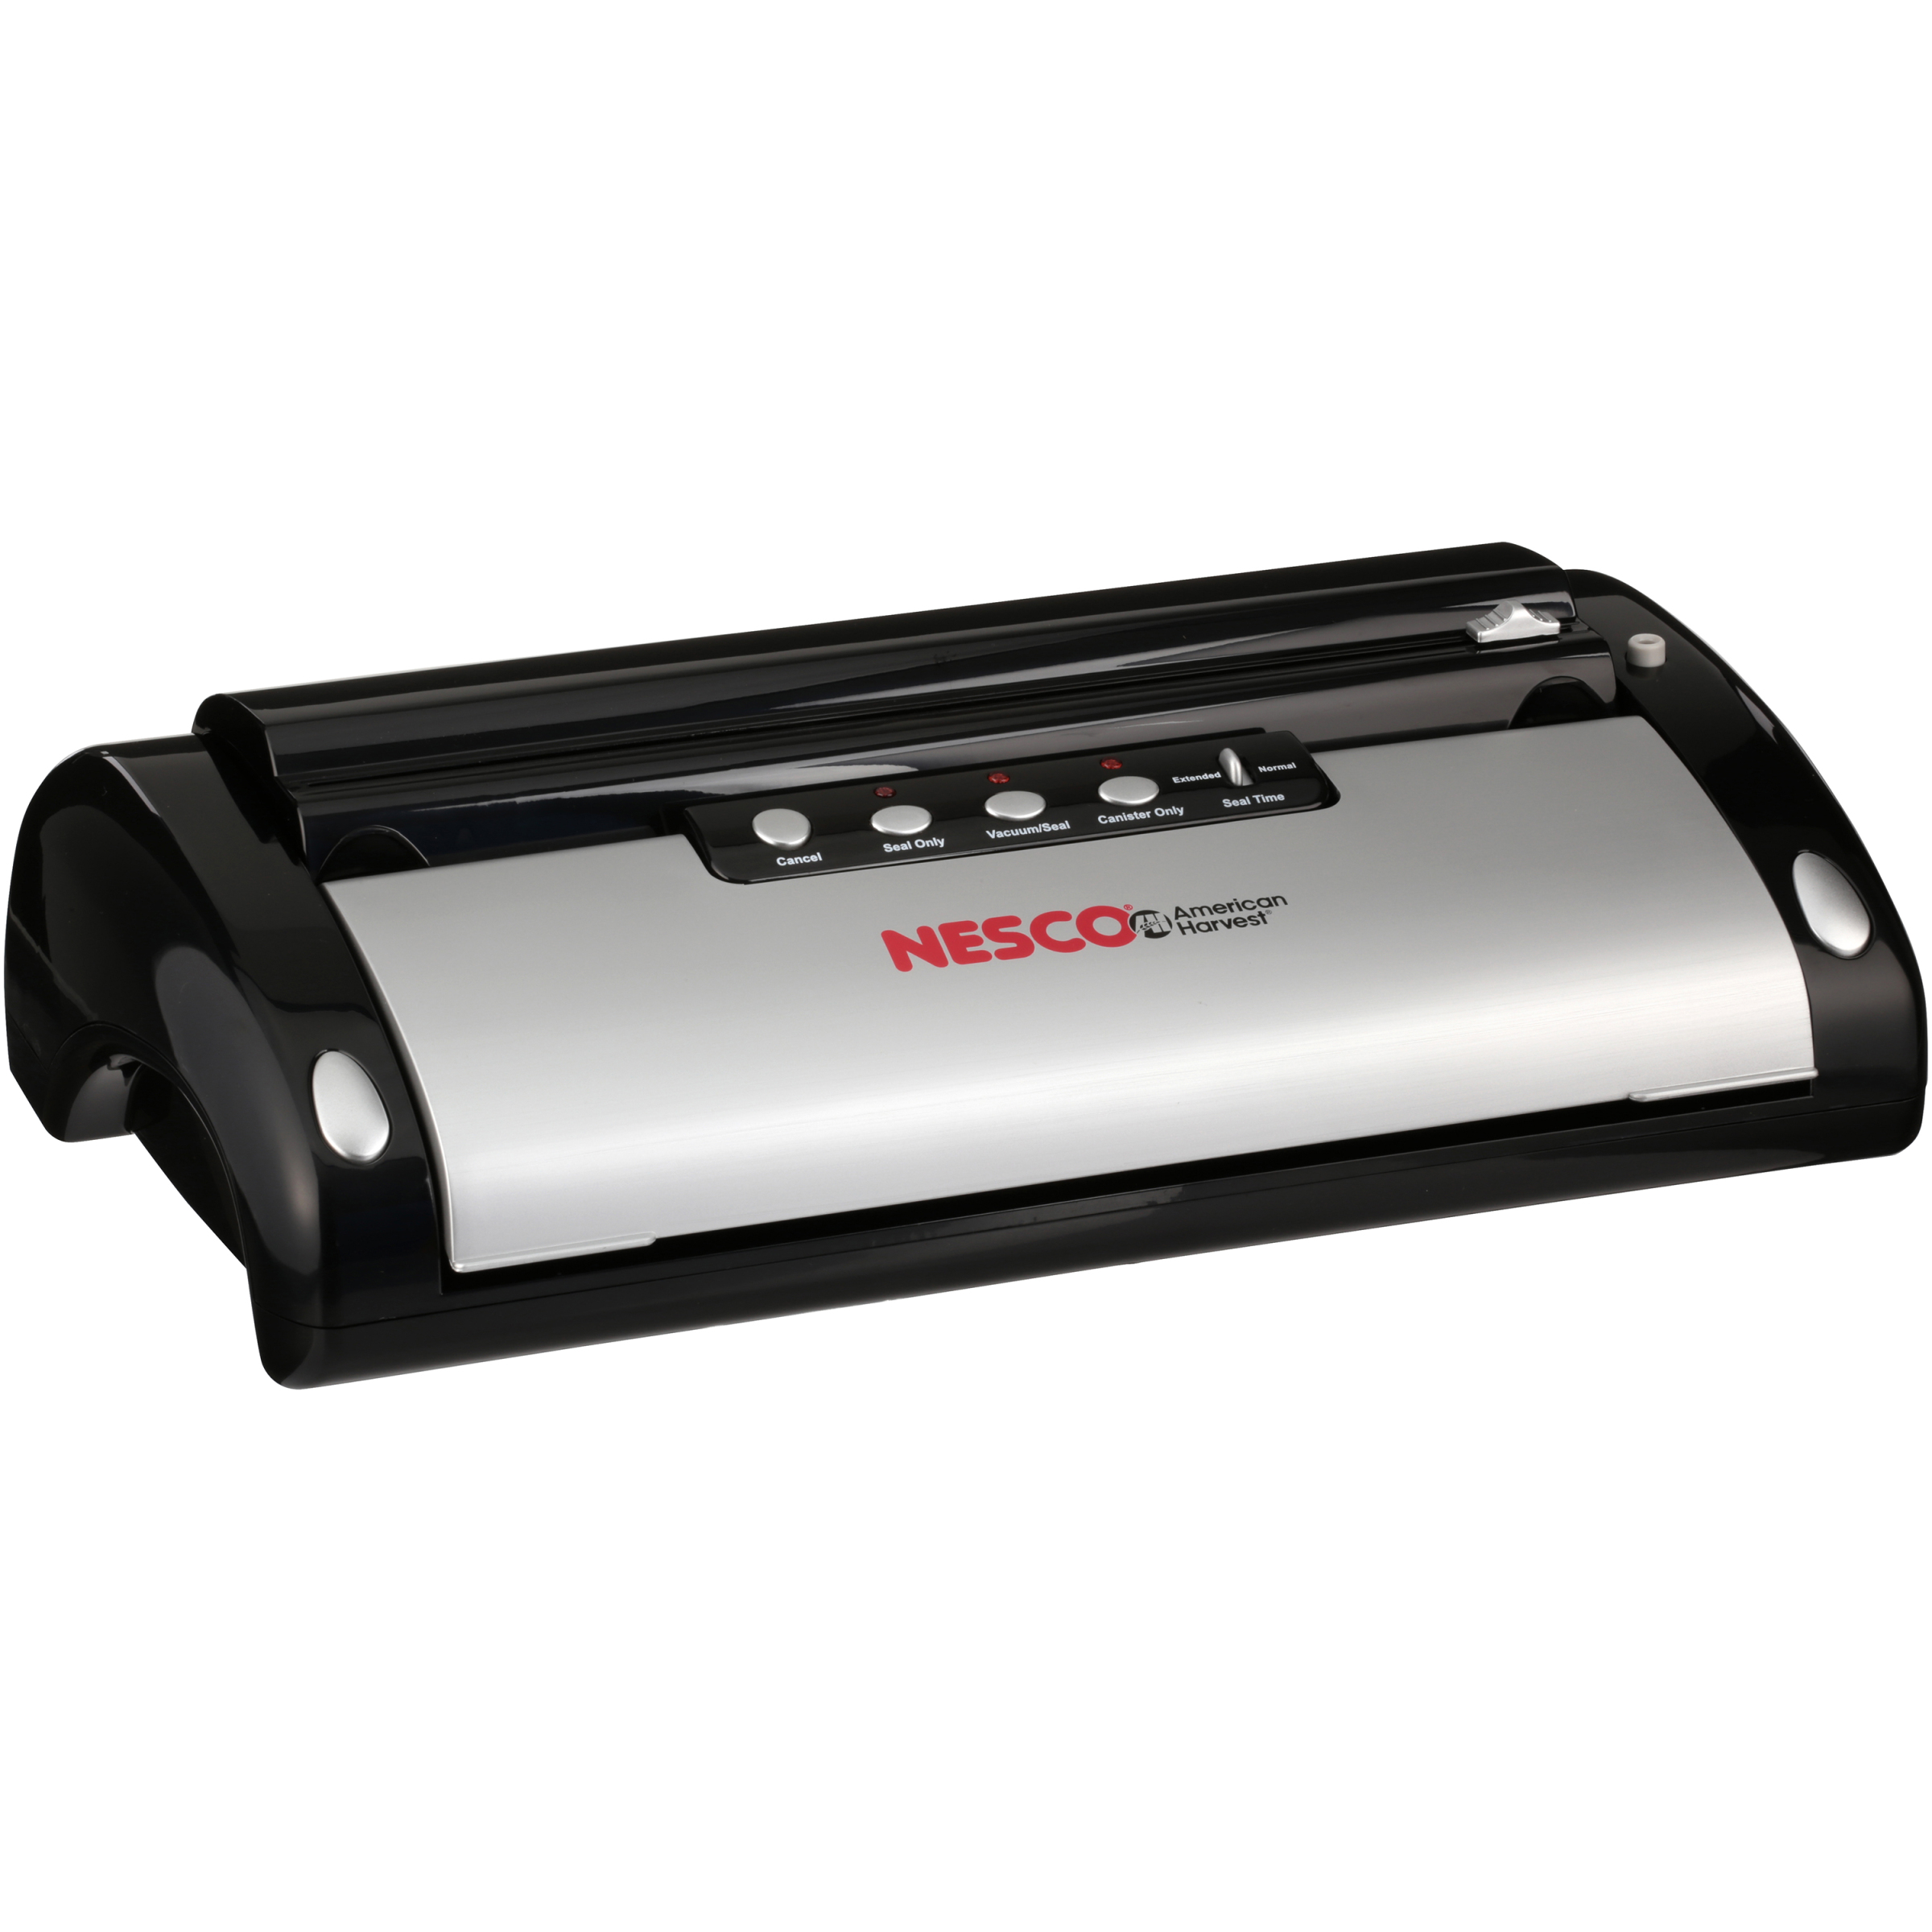 Nesco American Harvest Commercial-Grade Vacuum Sealer Box by The Metal Ware Corporation.